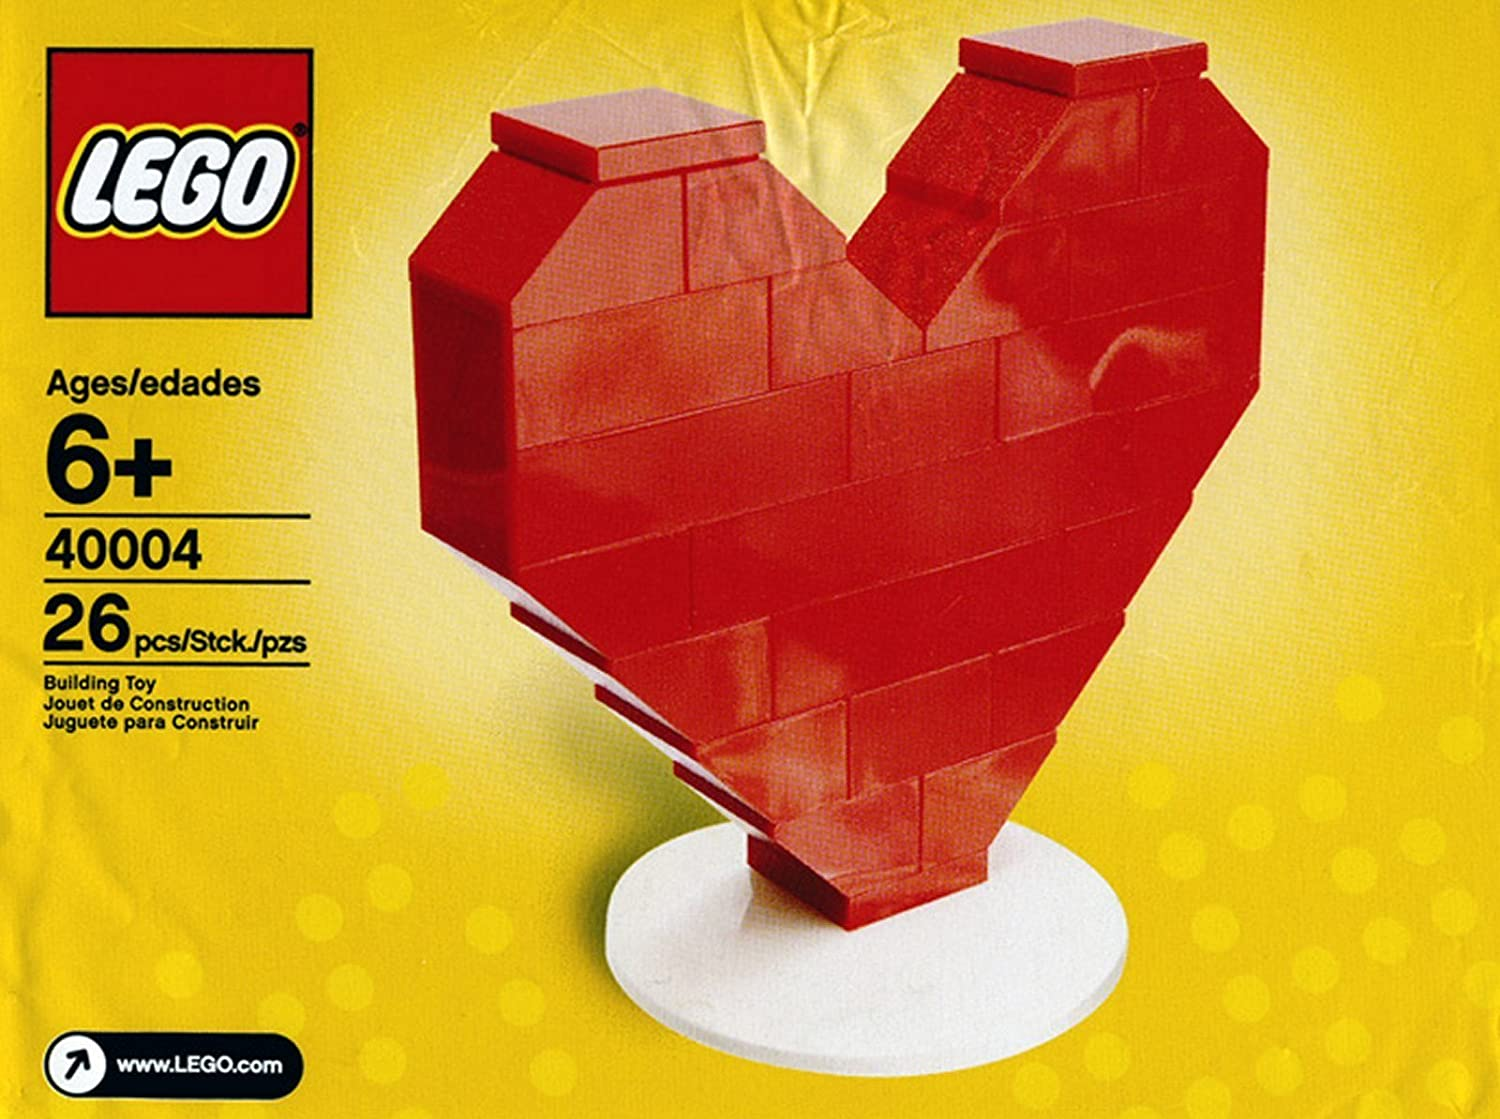 LEGO Red Heart Set